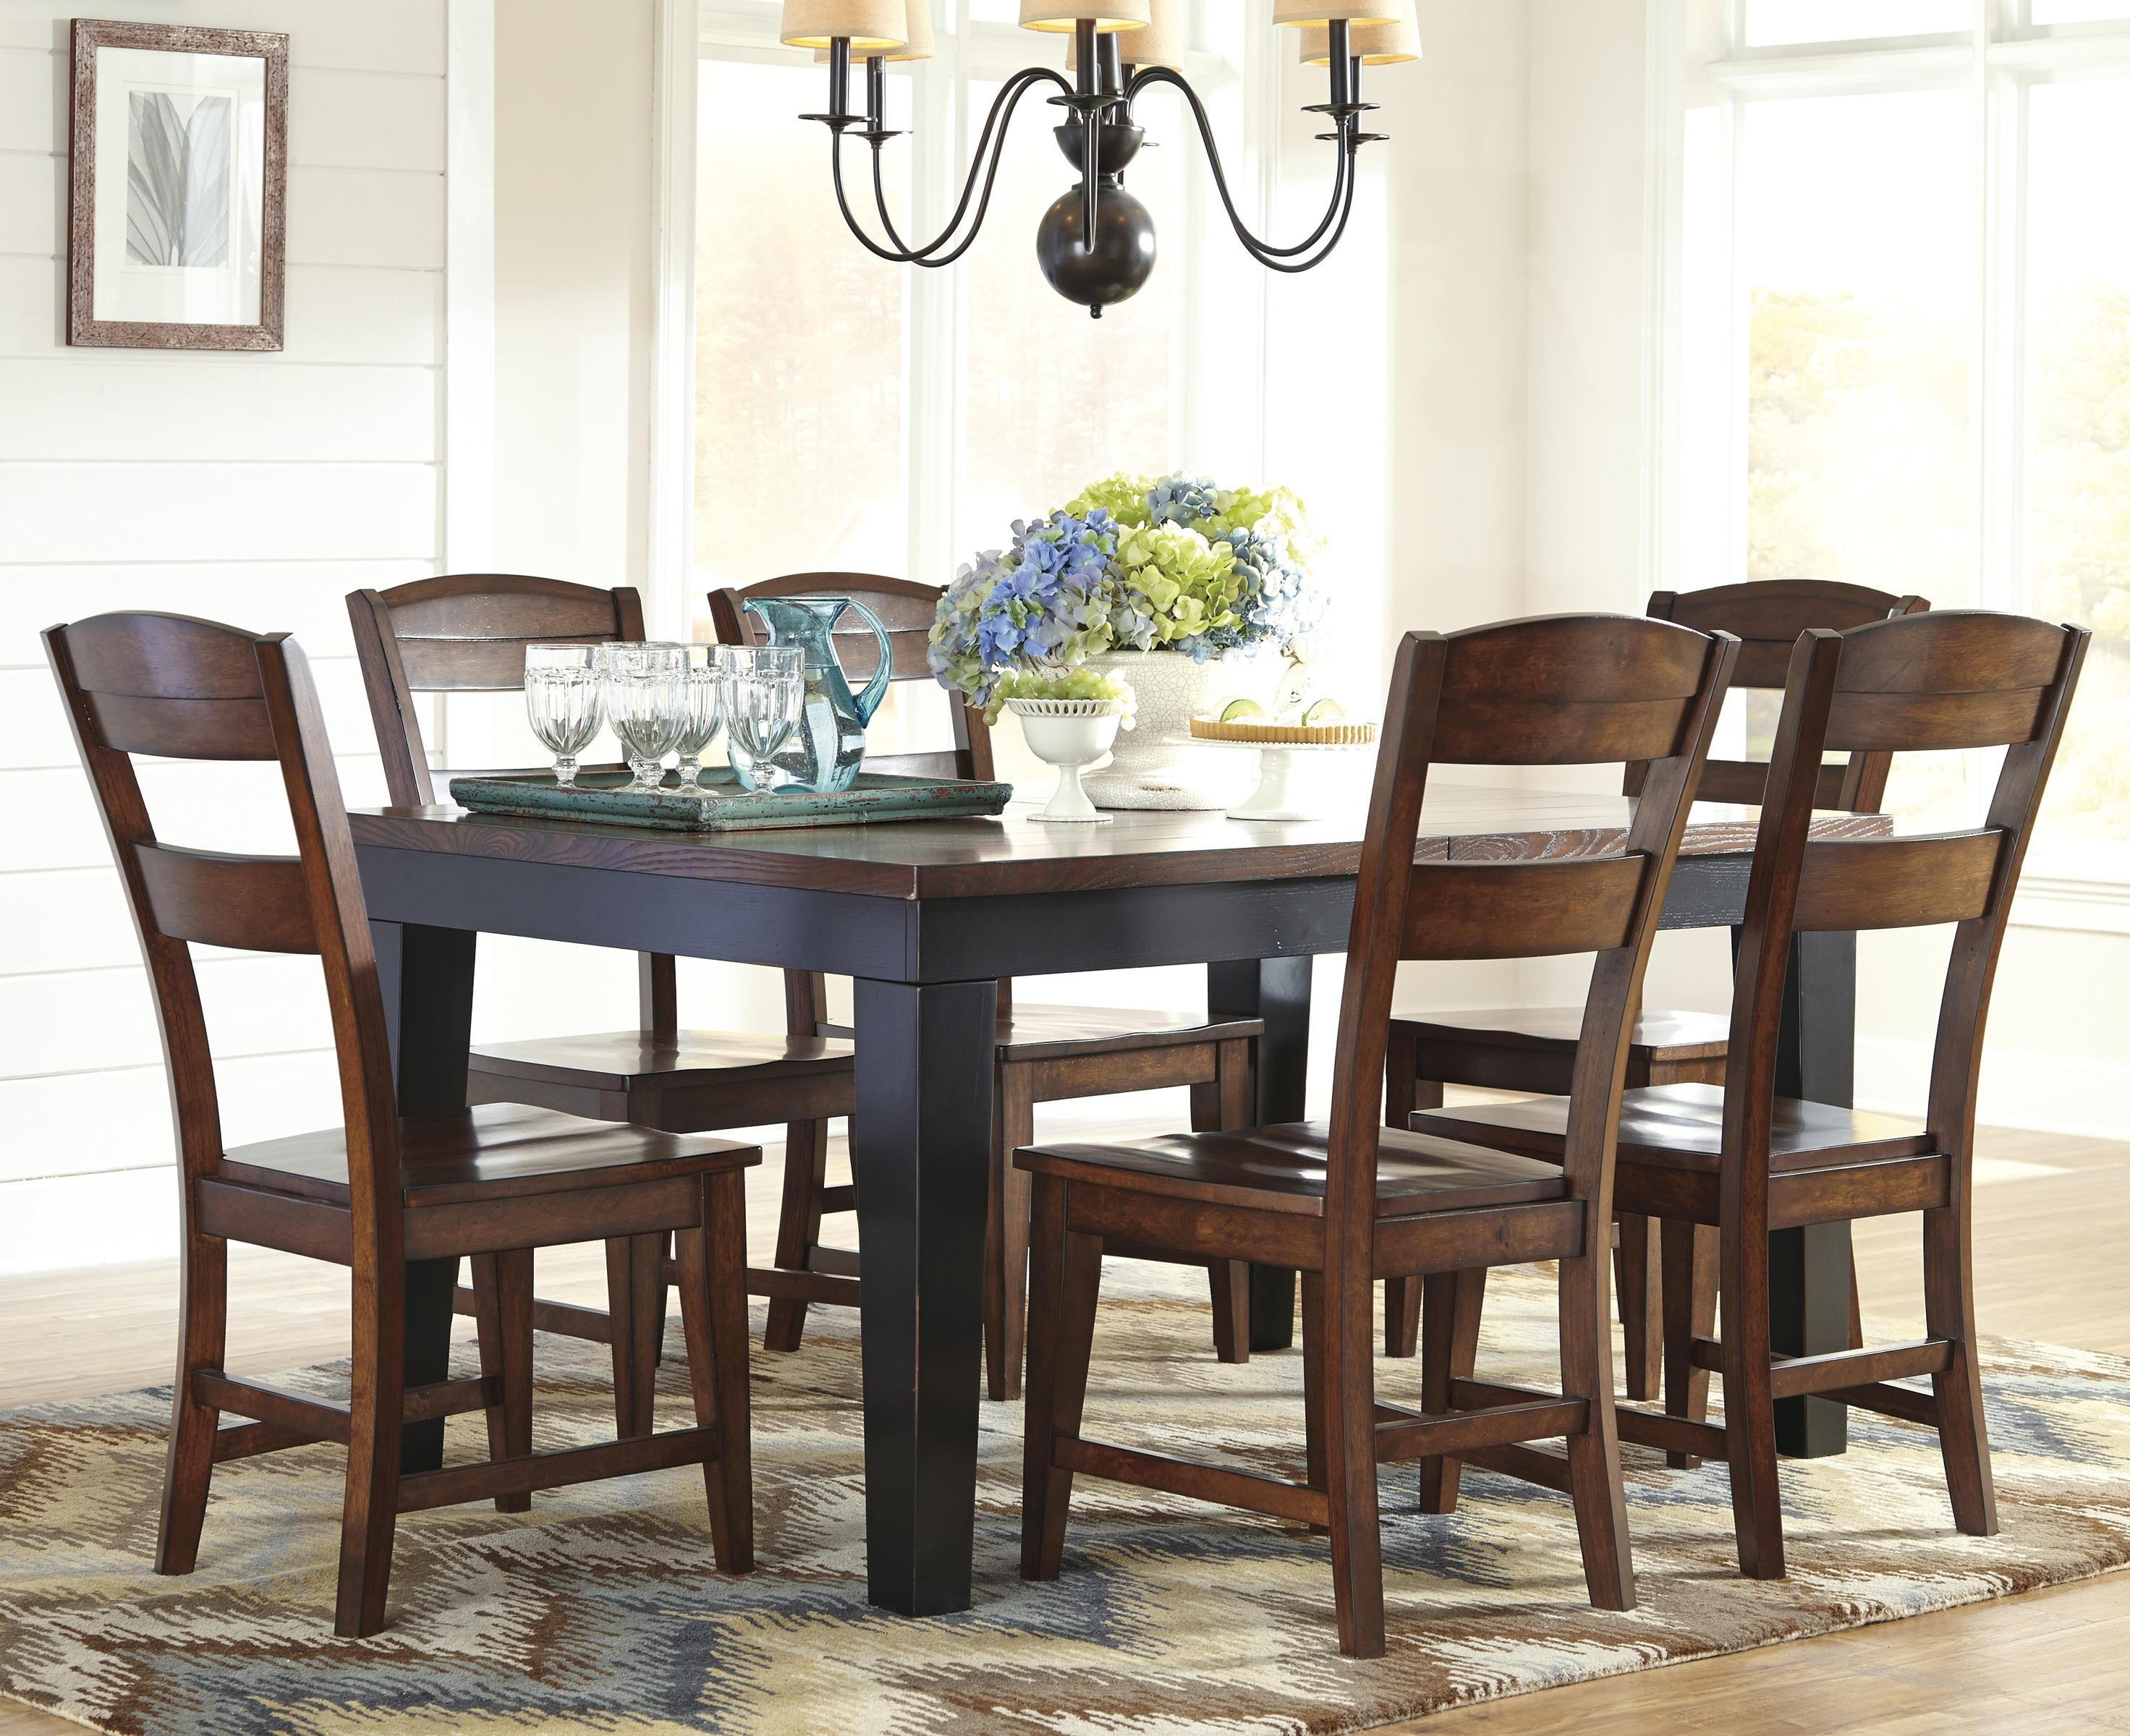 Signature Design By Ashley Marileze Rectangular Extension Dining Table